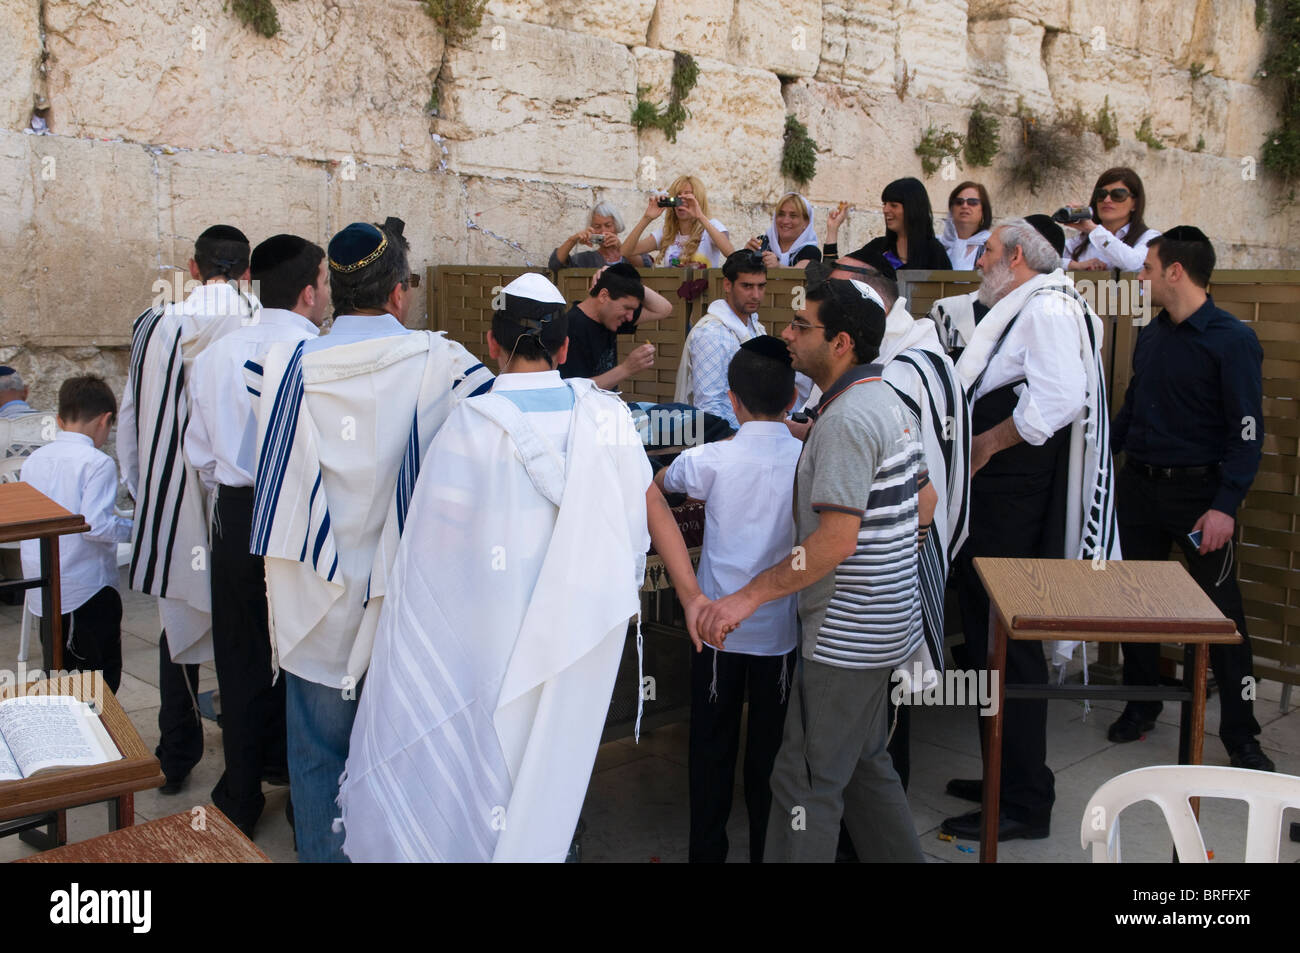 celebrating a bar mitzvah at the Western Wall in Jerusalem - Stock Image